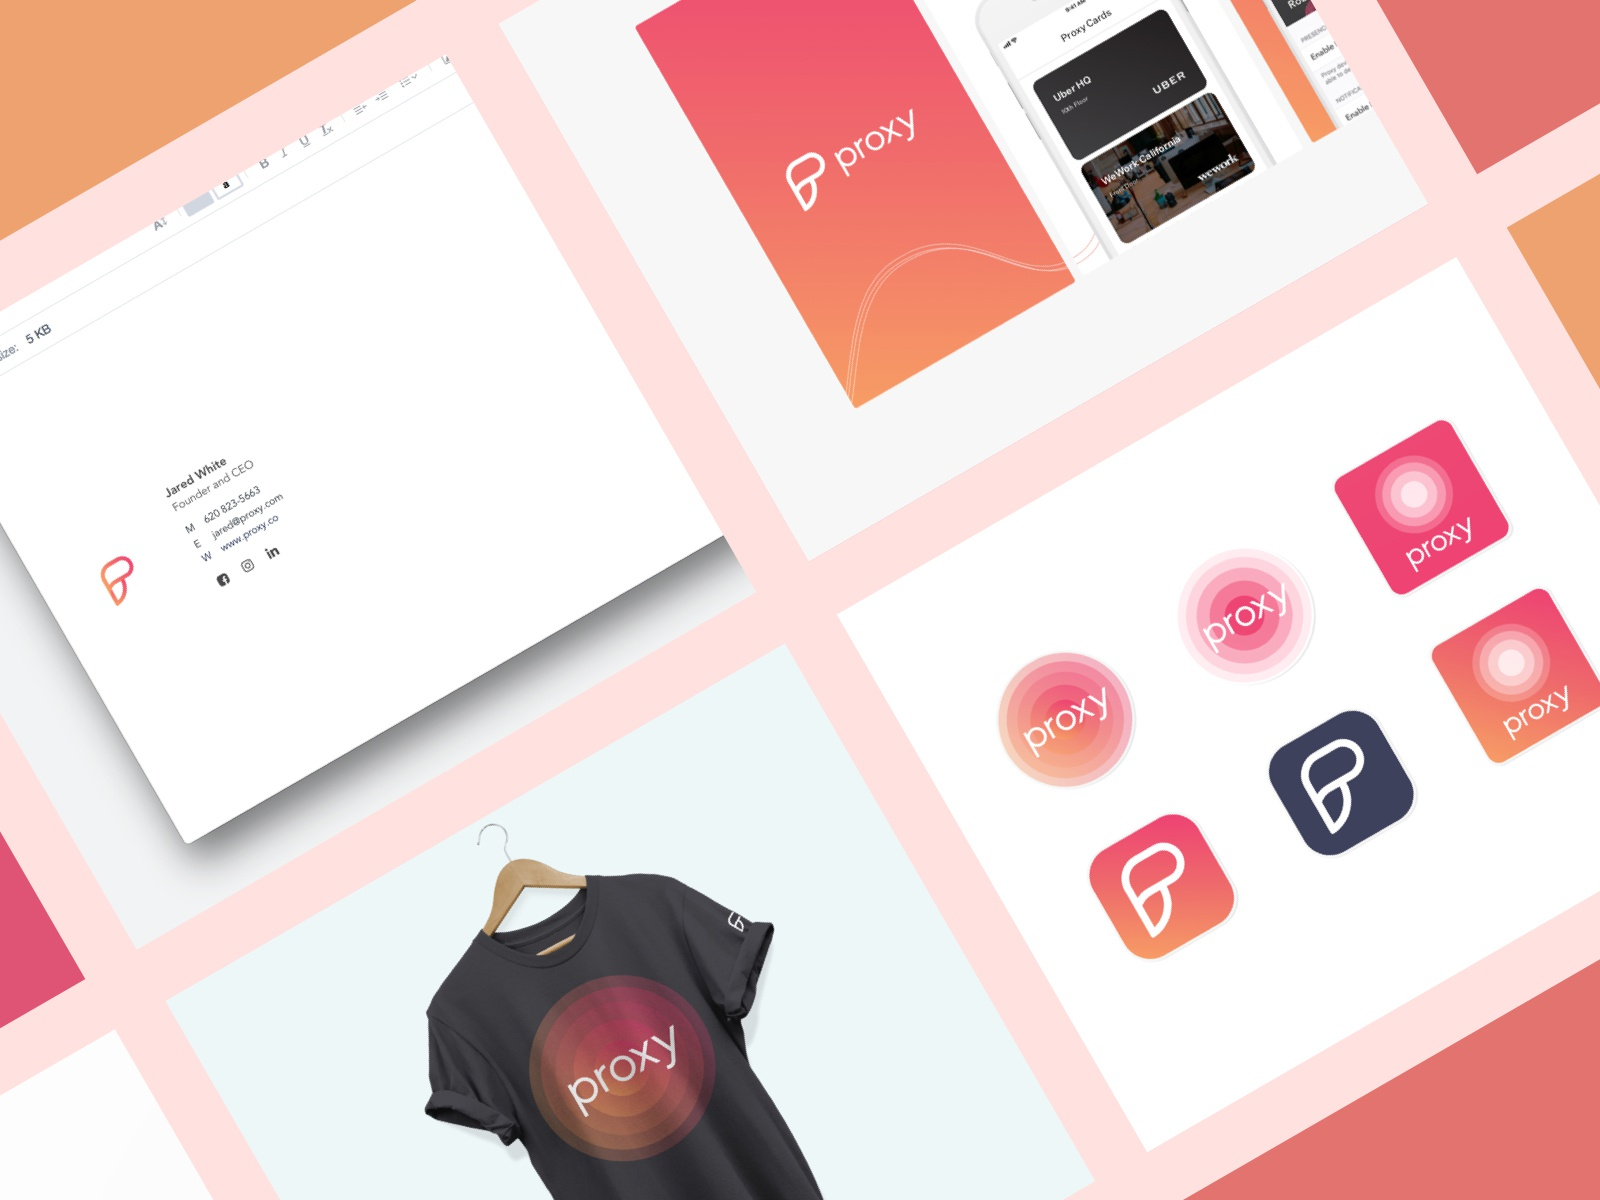 Branding for Proxy done last year by Alex Banaga on Dribbble